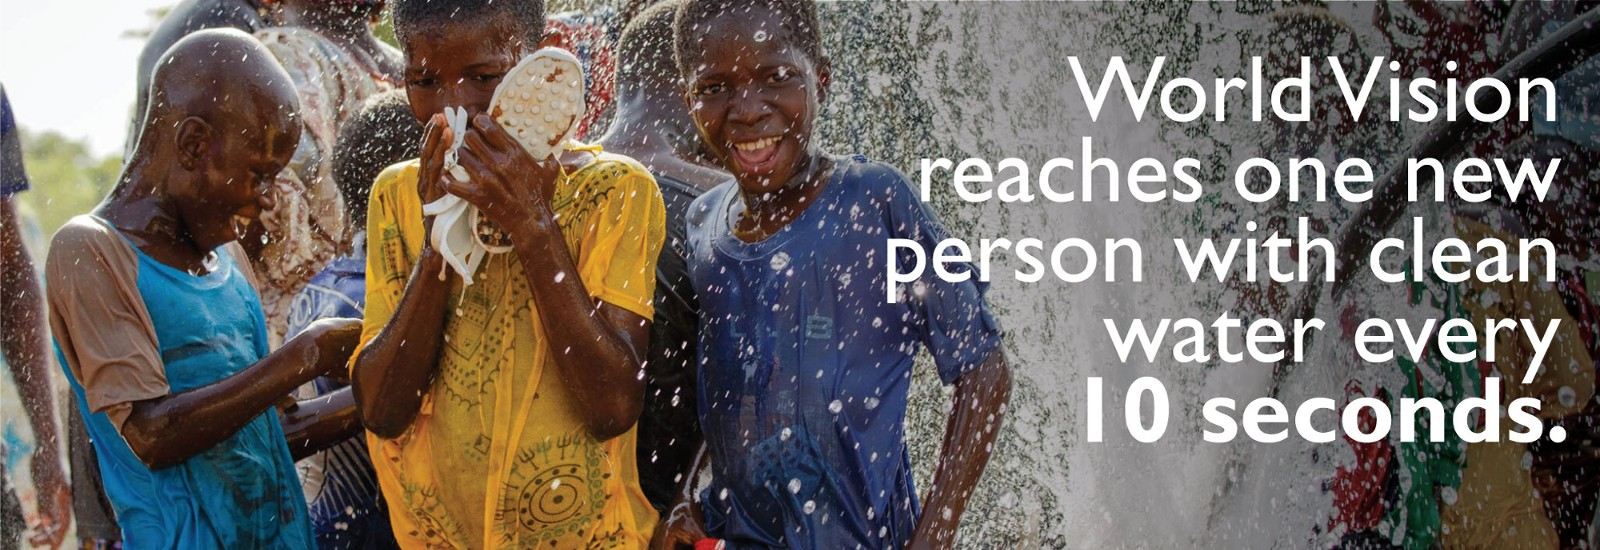 World Vision reaches one new person with clean water every 10 seconds